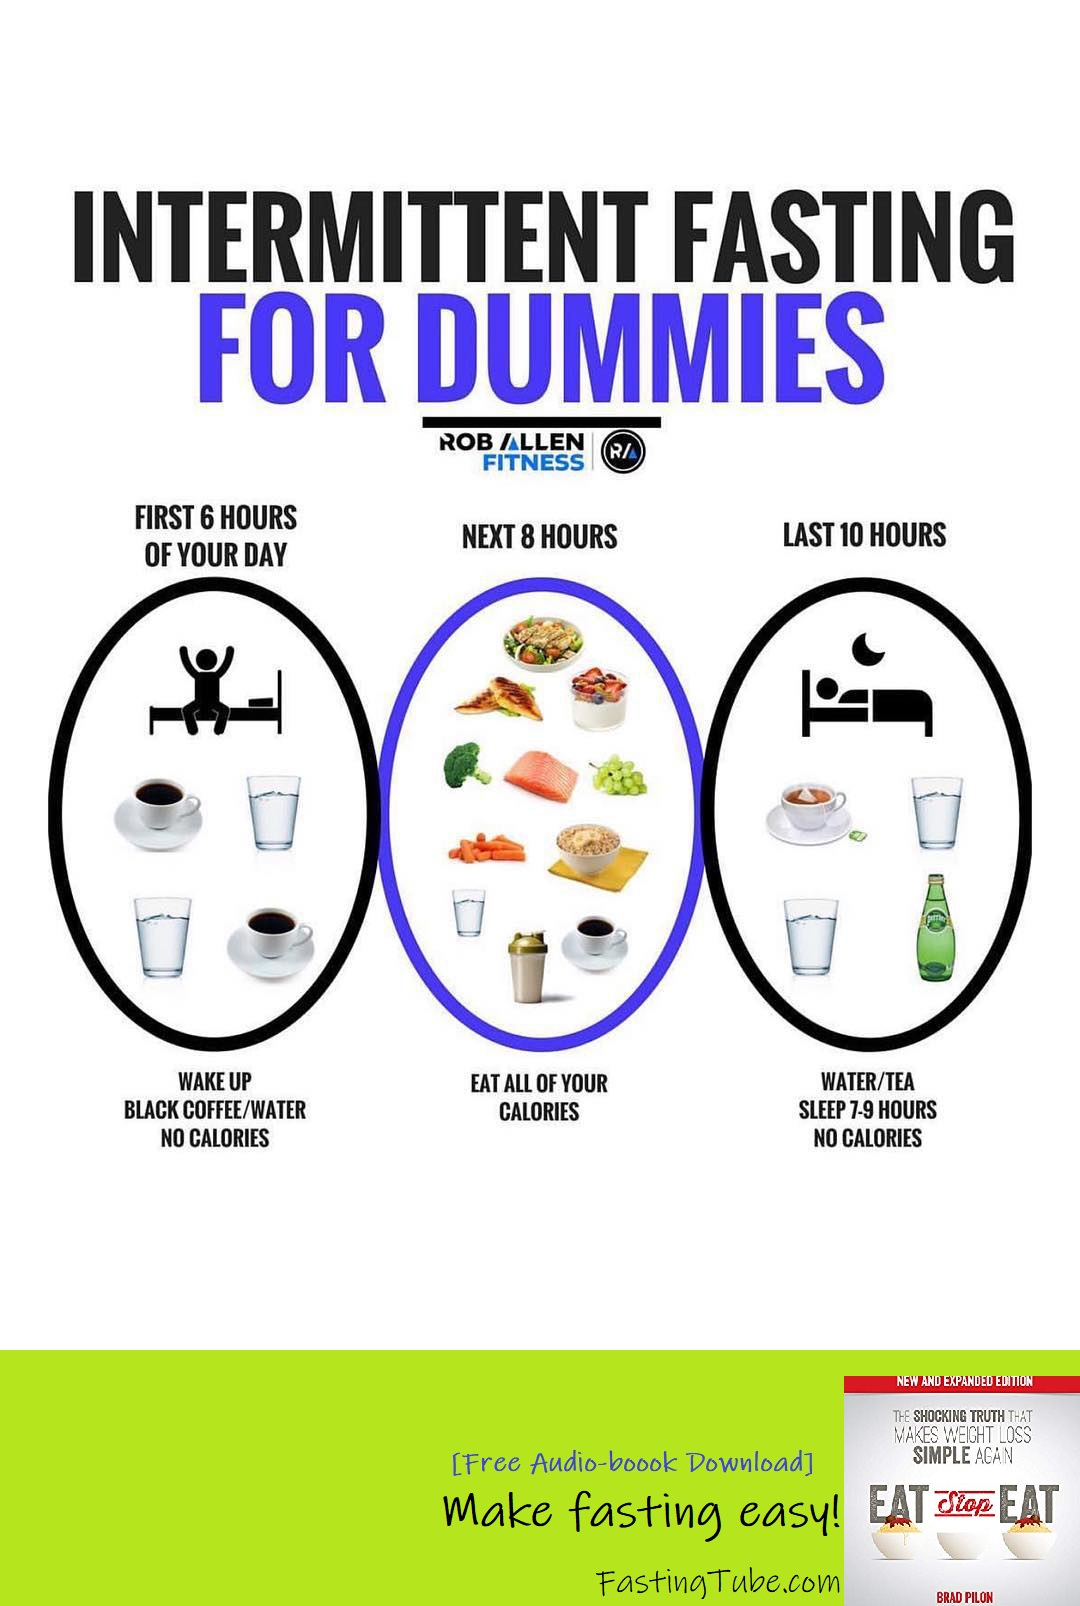 HOW TO: INTERMITTENT FASTING   Now I know none of you are